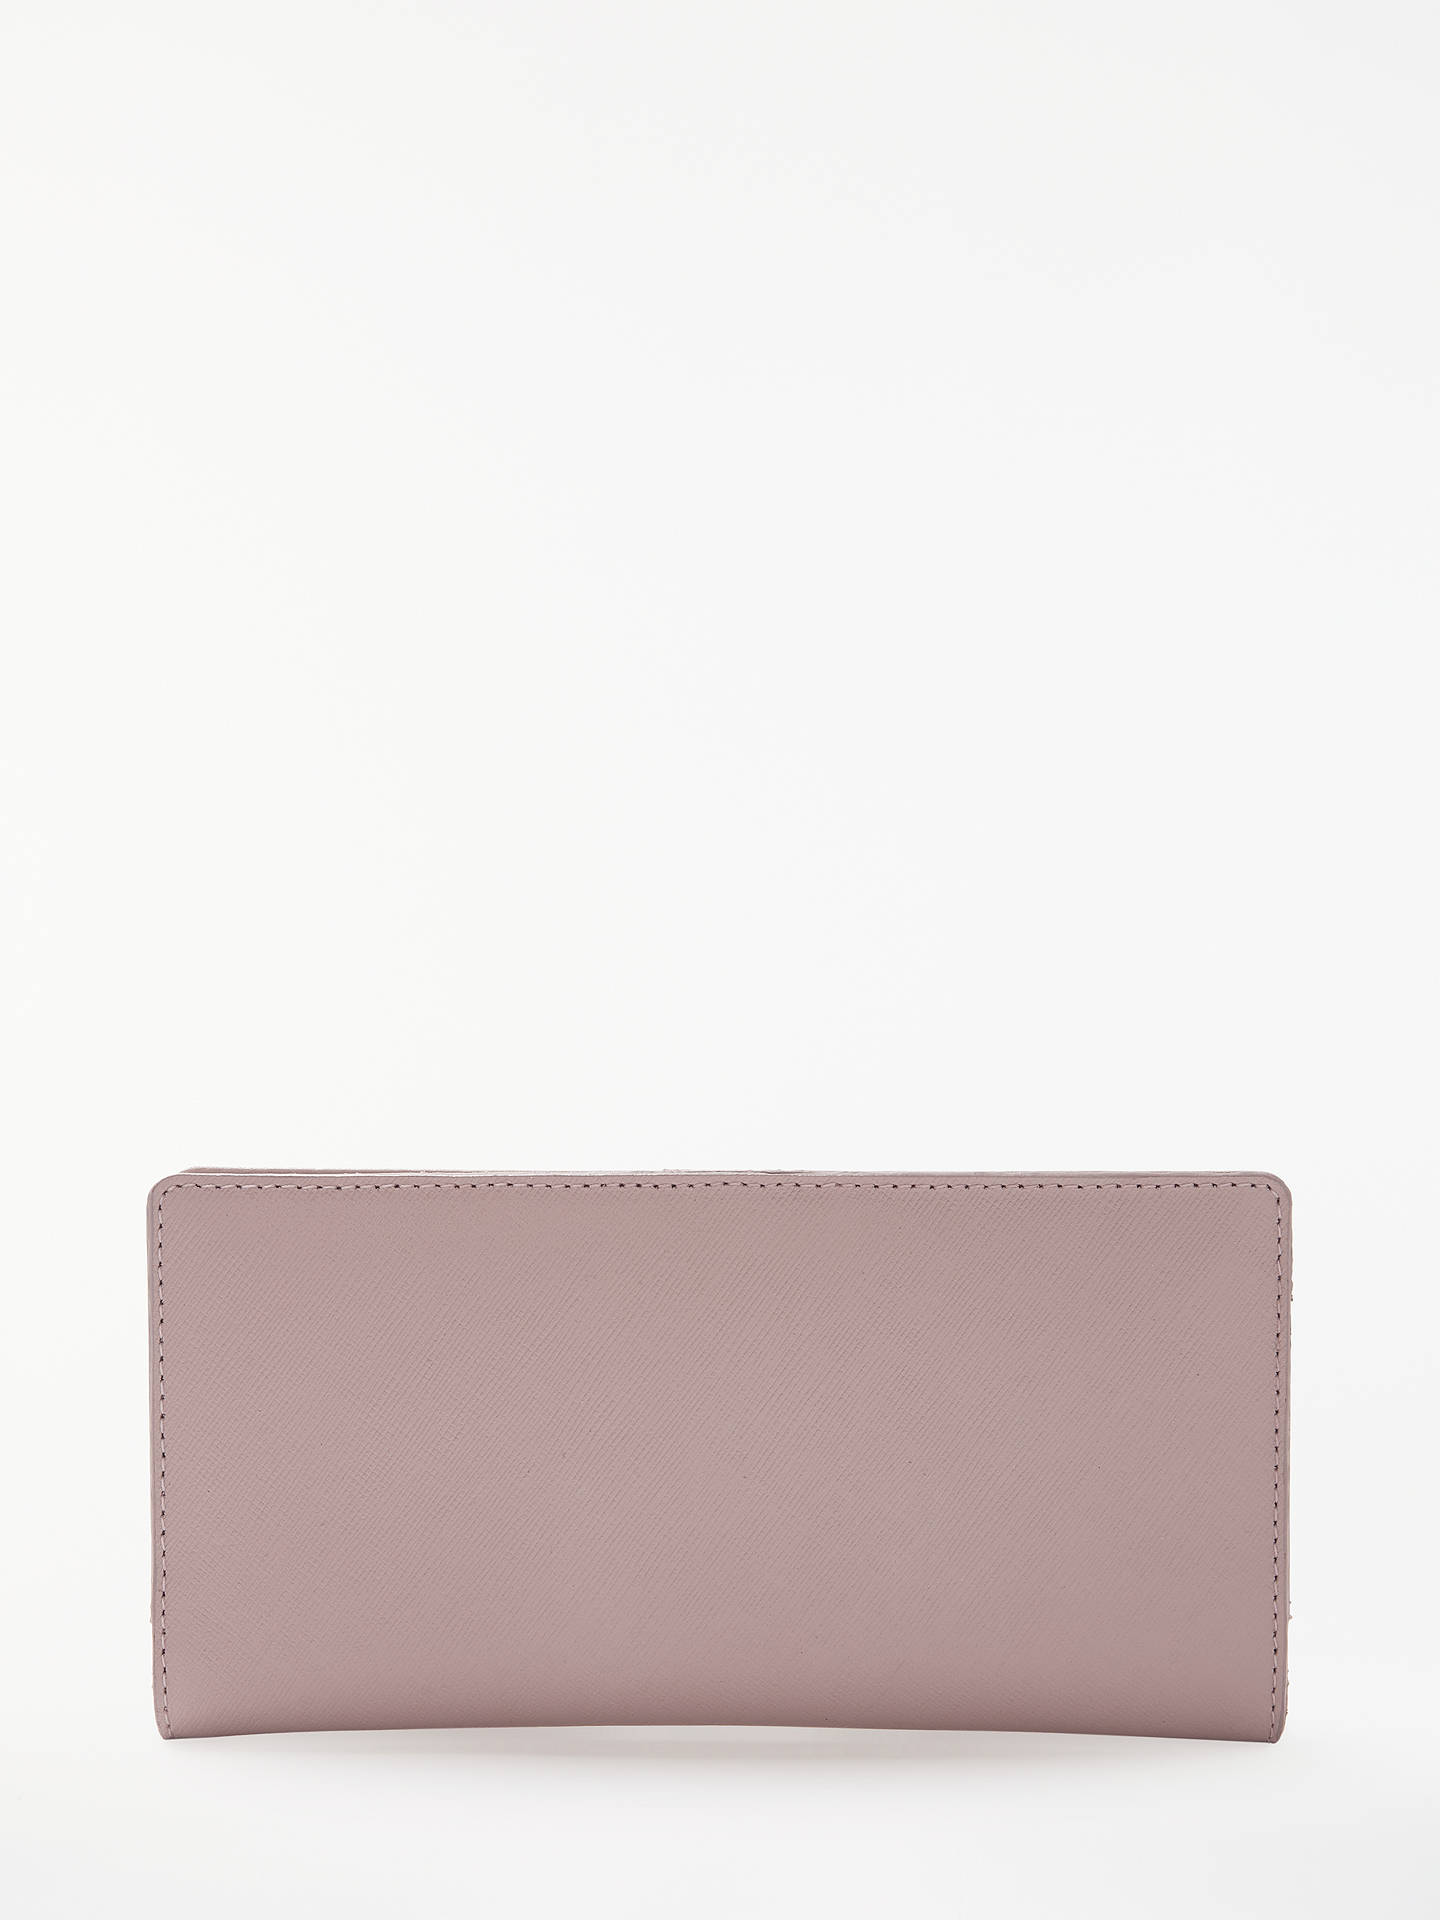 89ca6736162 Buy John Lewis & Partners Marie Saffiano Leather Foldover Purse, Pink  Online at johnlewis.